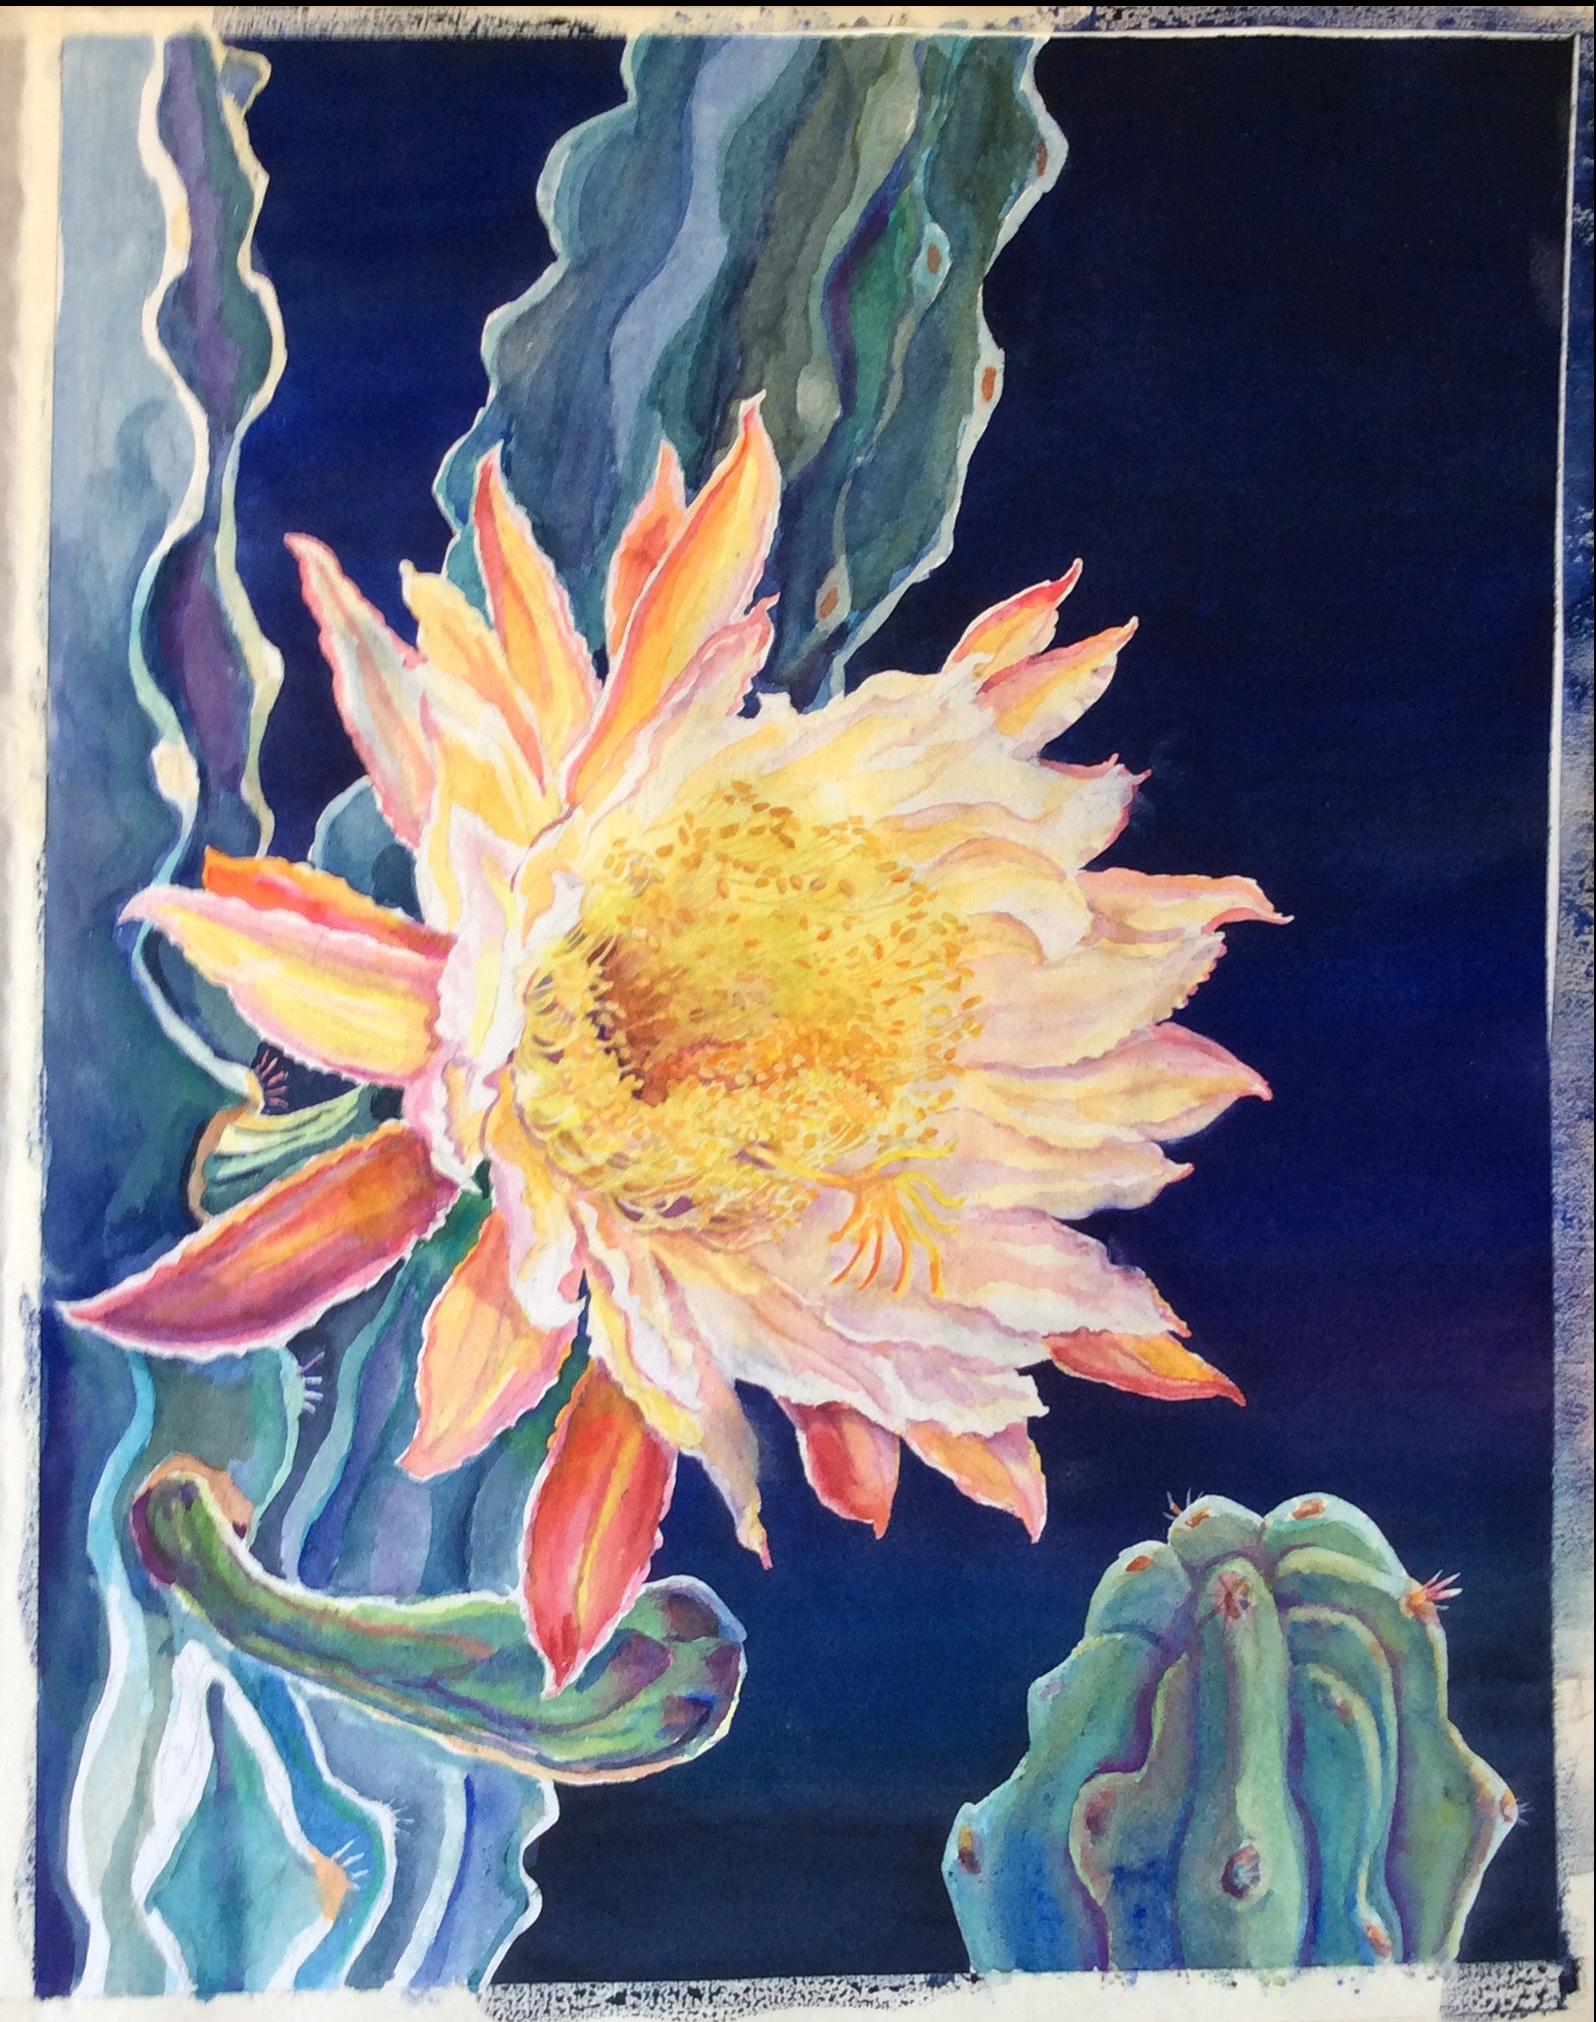 4. Transparent layers of color are gradually added to the flower petal and arms of the cactus.